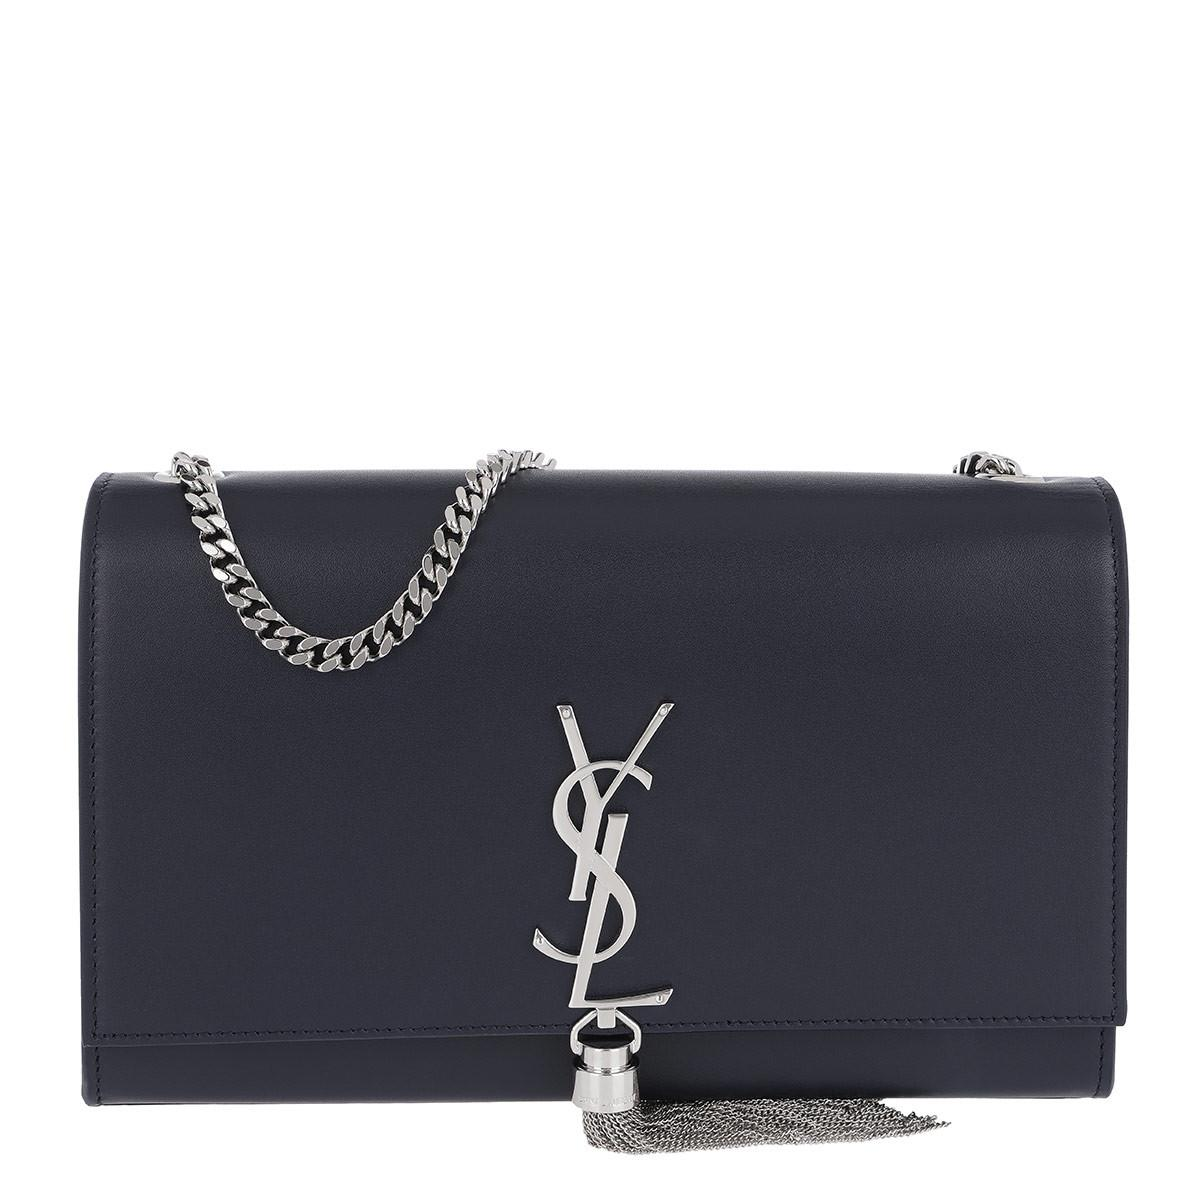 Saint Laurent Ysl Monogramme Medium Chain Bag Navy in Blue - Save 15 ... ede4c37d52